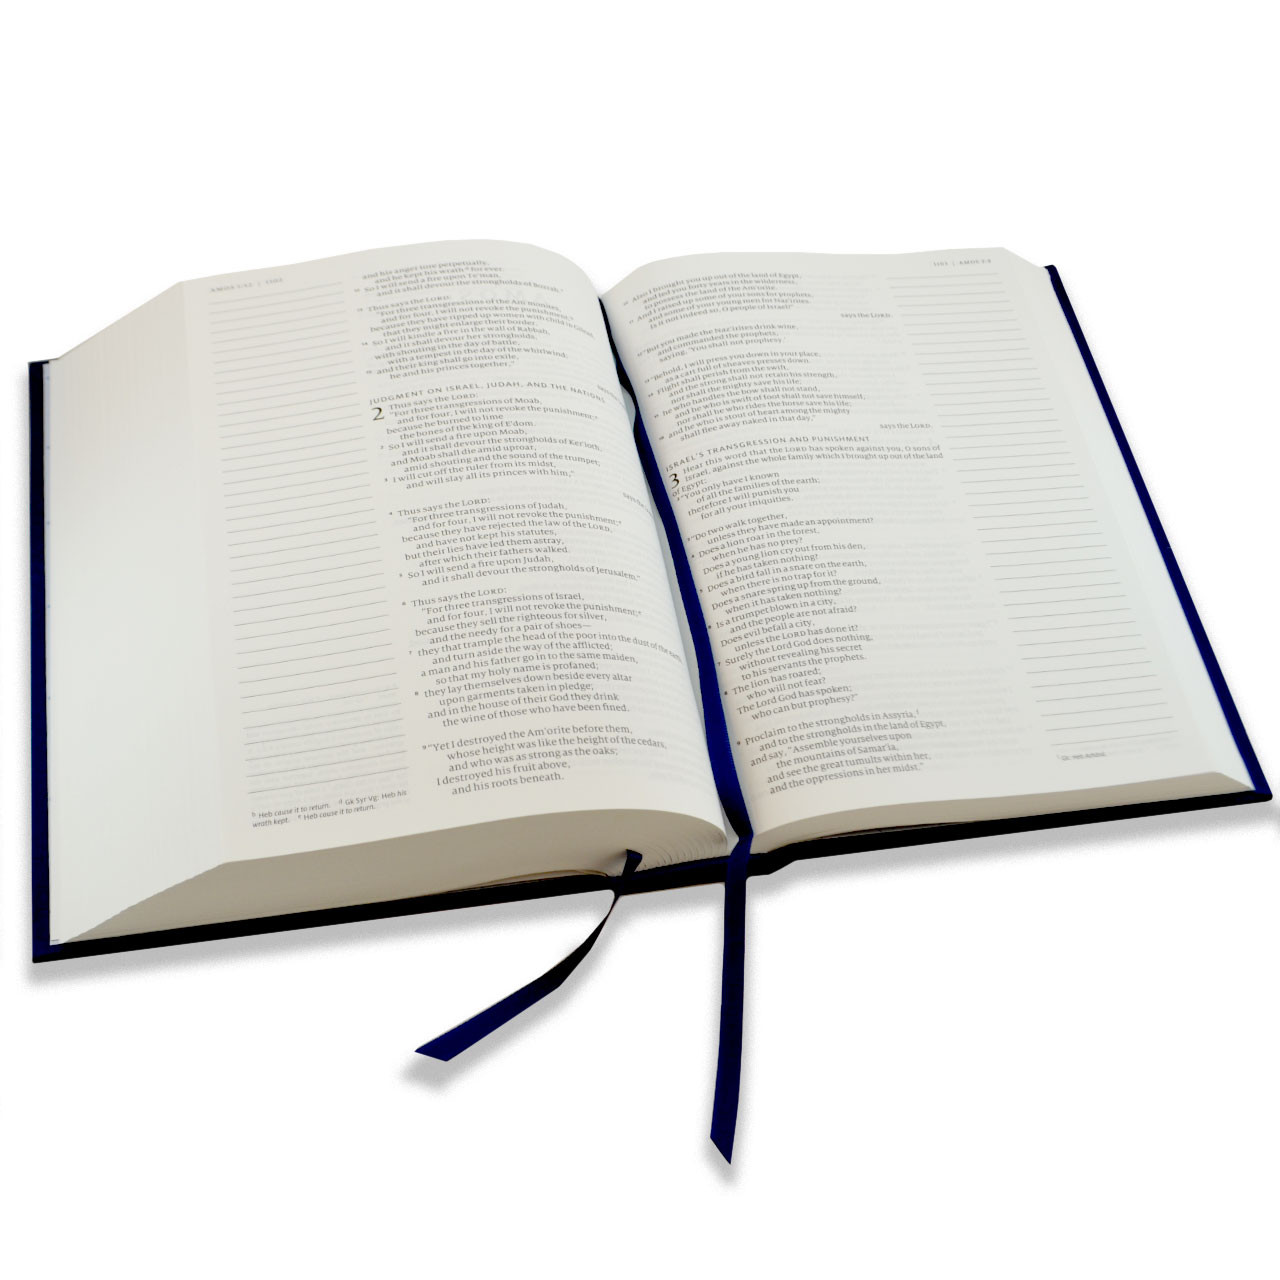 Inside pages of The Ave Catholic Notetaking Bible